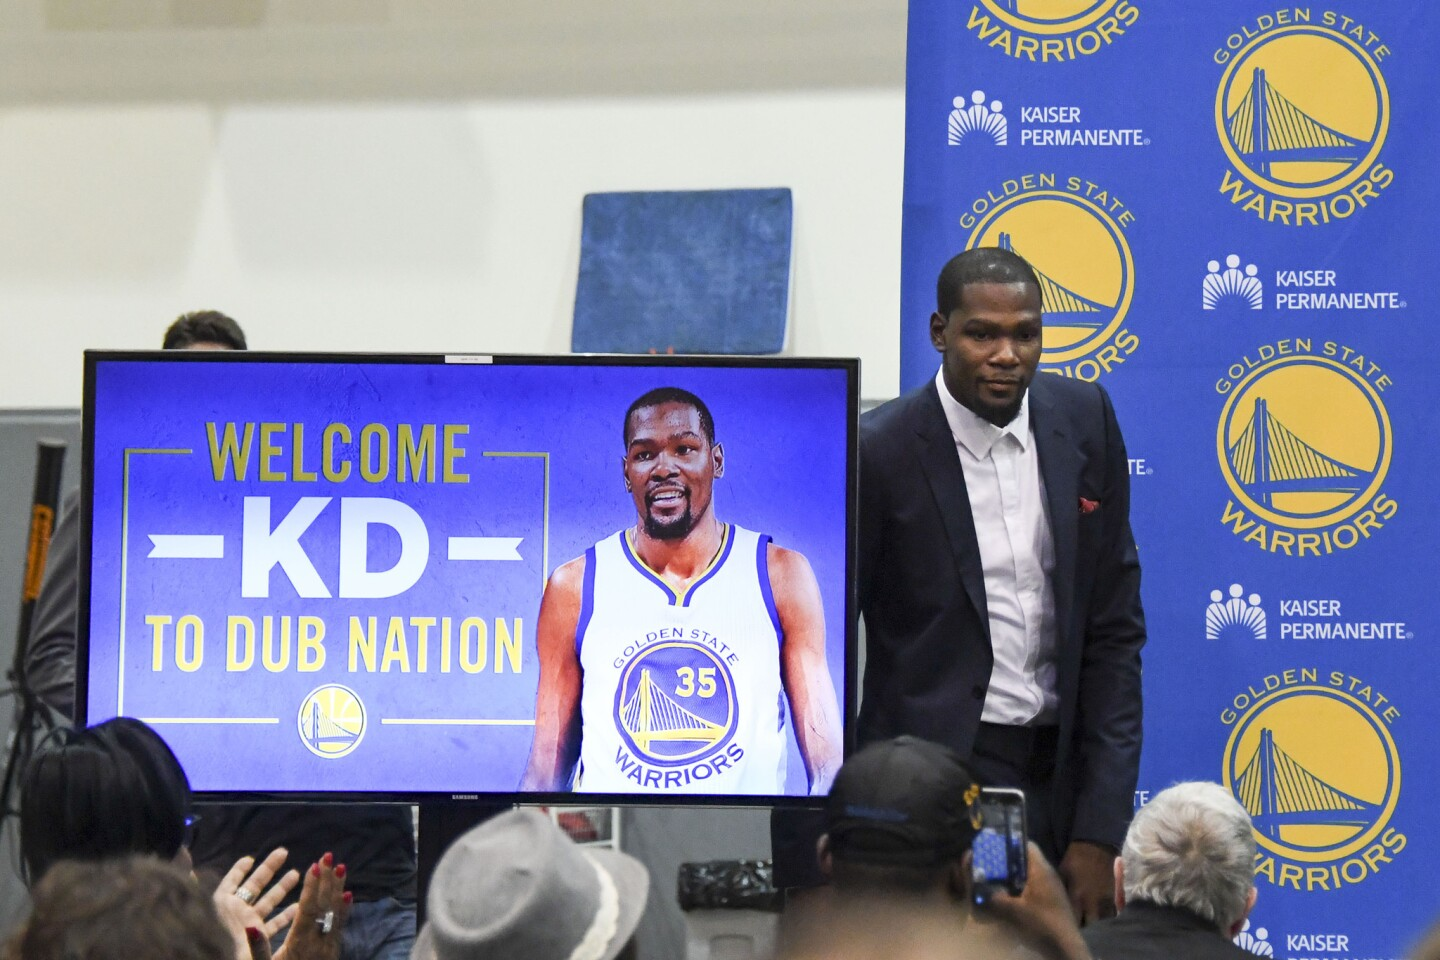 Jul 7, 2016; Oakland, CA, USA; Kevin Durant walks onto the stage during a press conference after signing with the Golden State Warriors at the Warriors Practice Facility. Mandatory Credit: Kyle Terada-USA TODAY Sports ** Usable by SD ONLY **